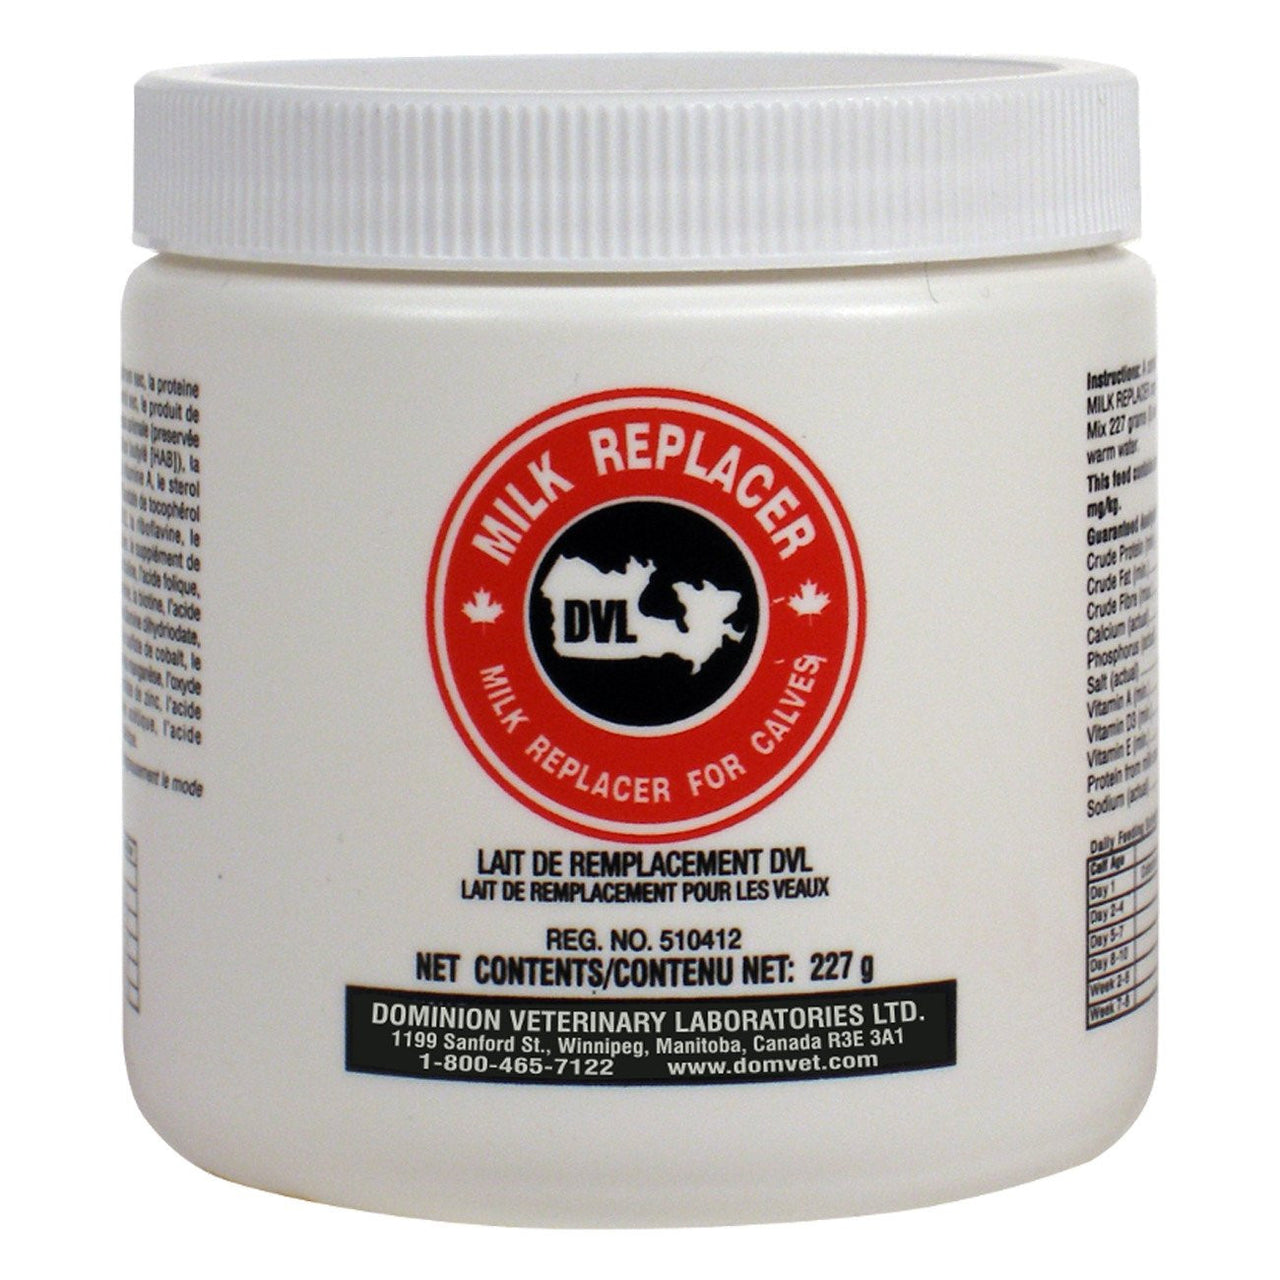 Dvl Milk Replacer 227G - Pharmaceuticals Dvl - Canada